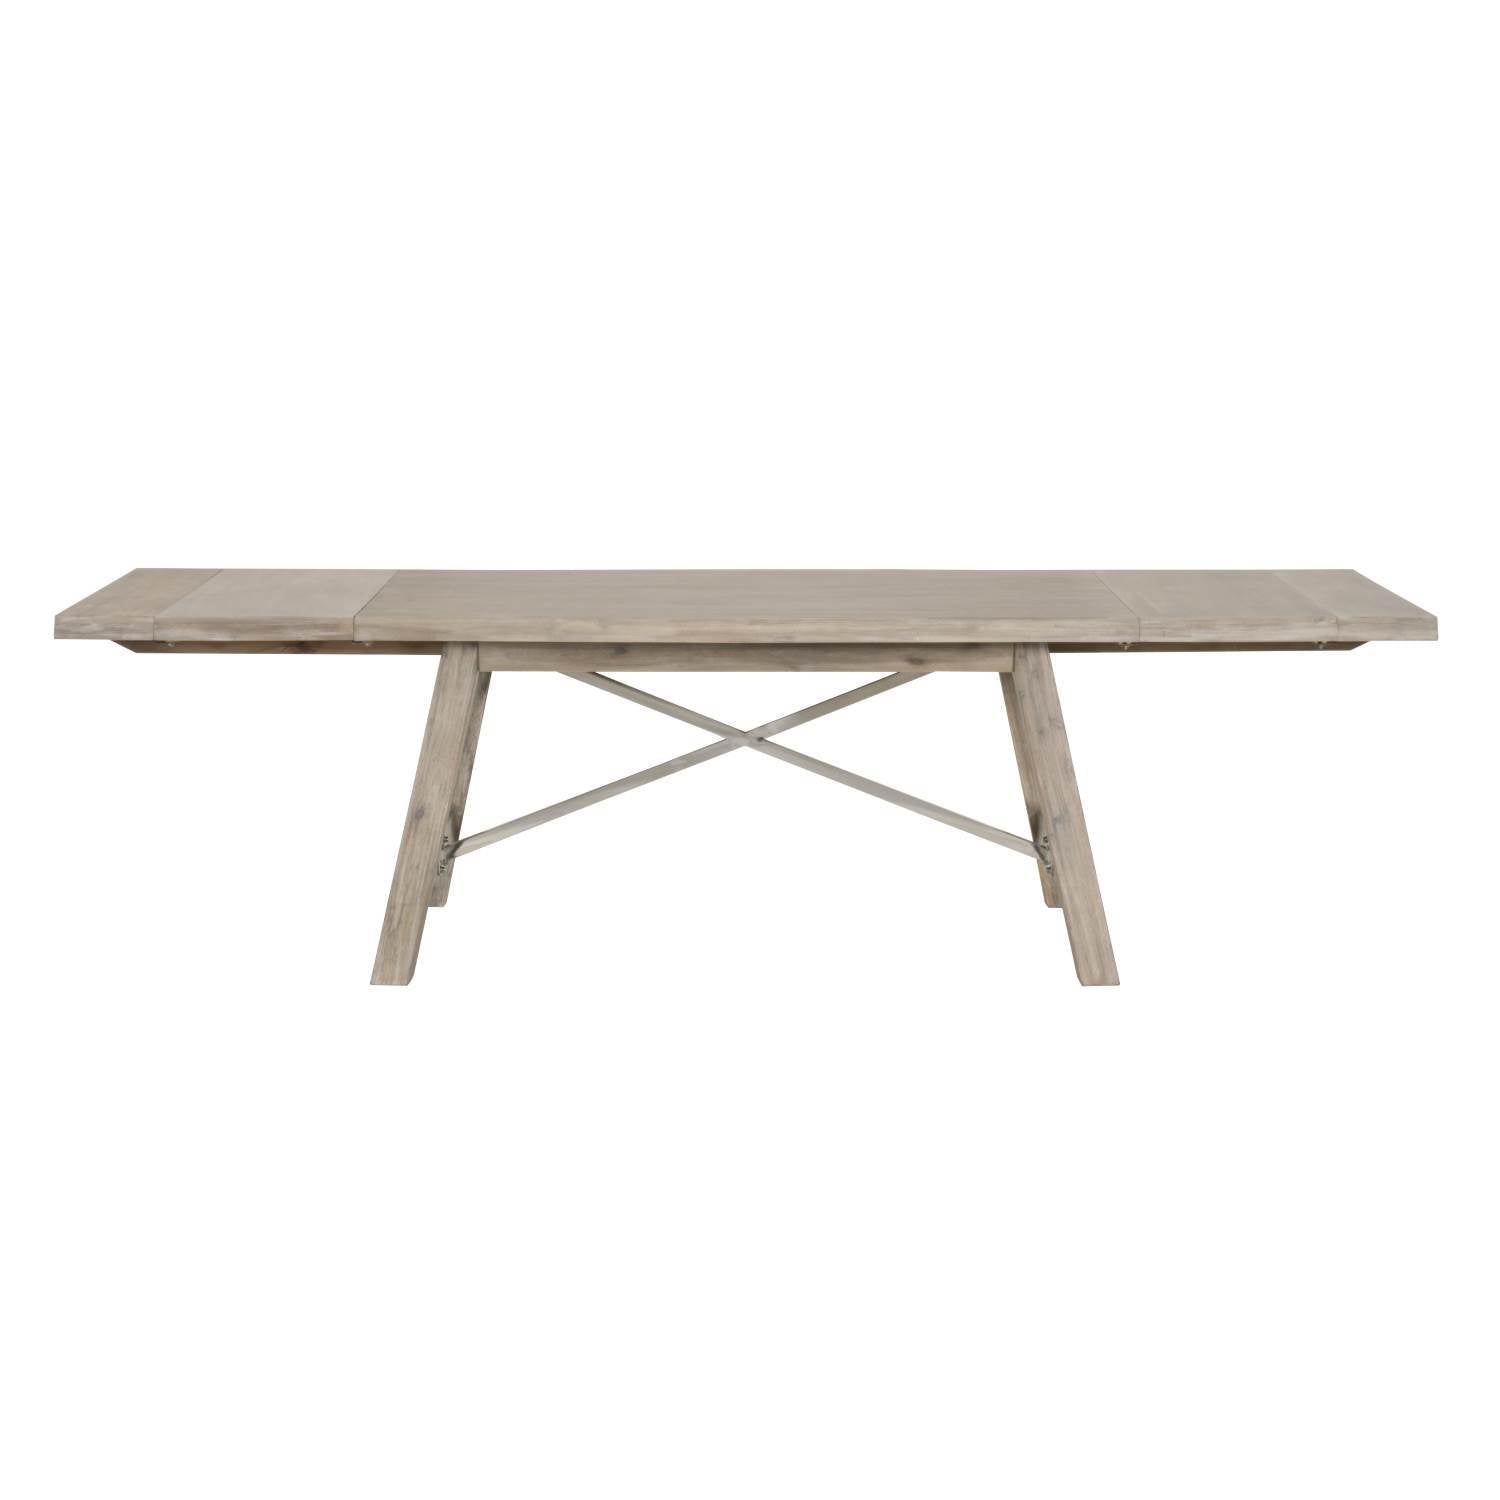 Nixon Extension Dining Table in Natural Gray